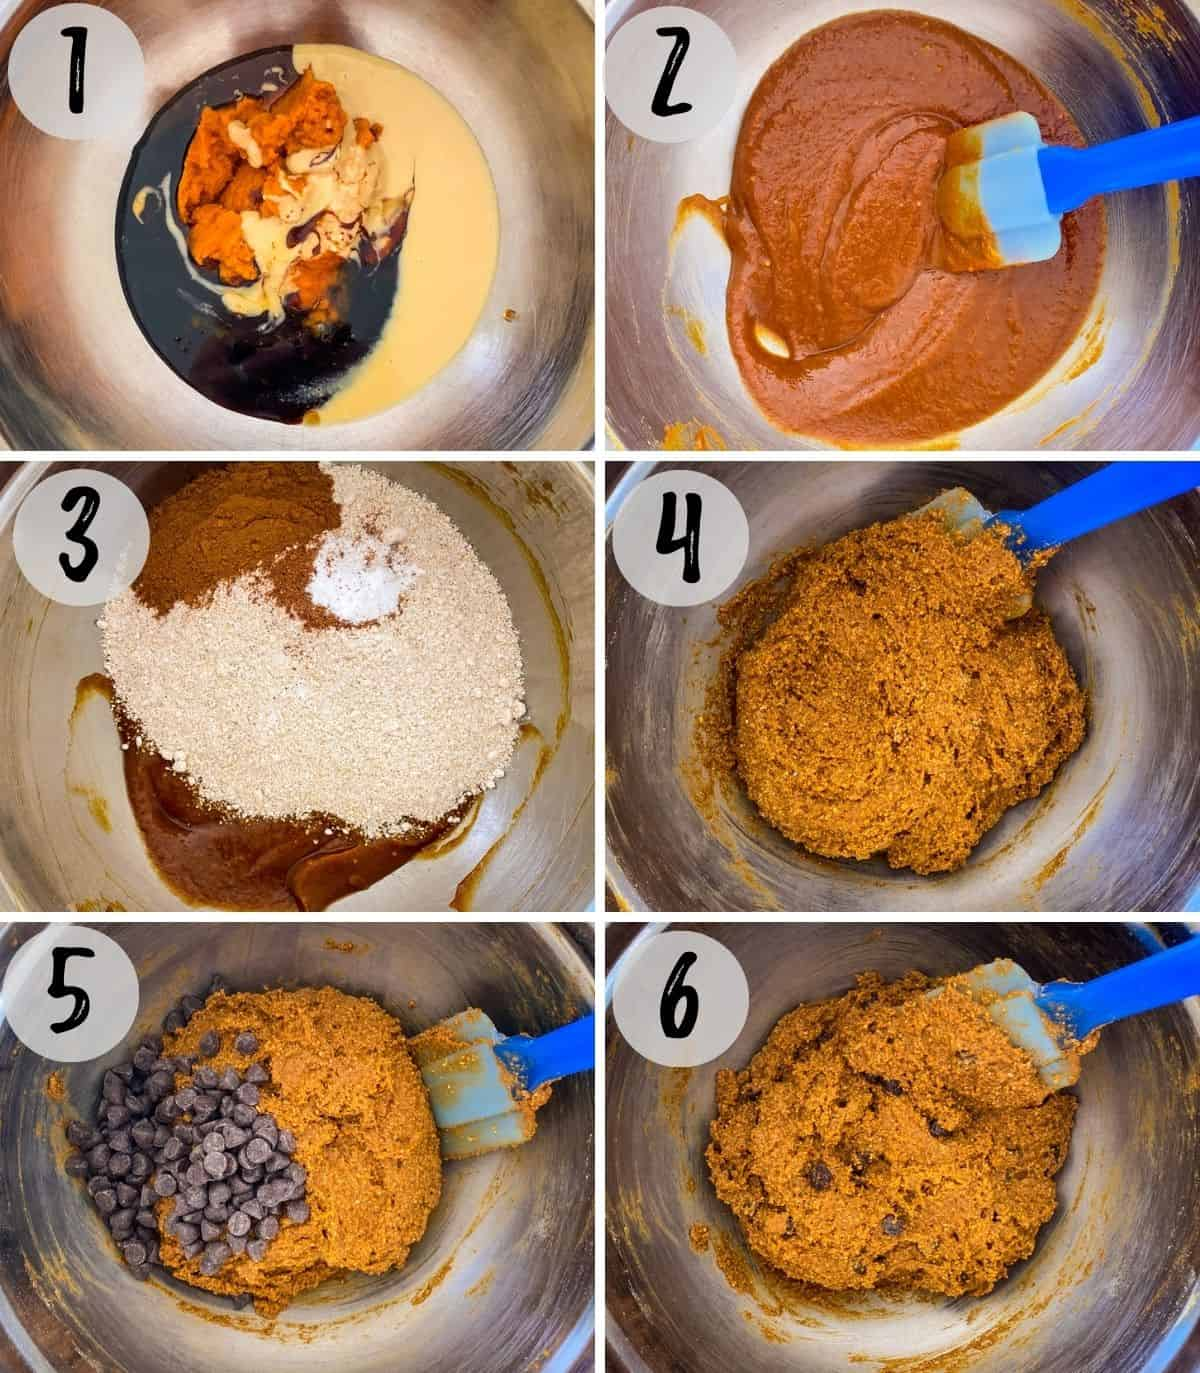 Step by step photos of large mixing bowl with wet and dry ingredients being mixed together.